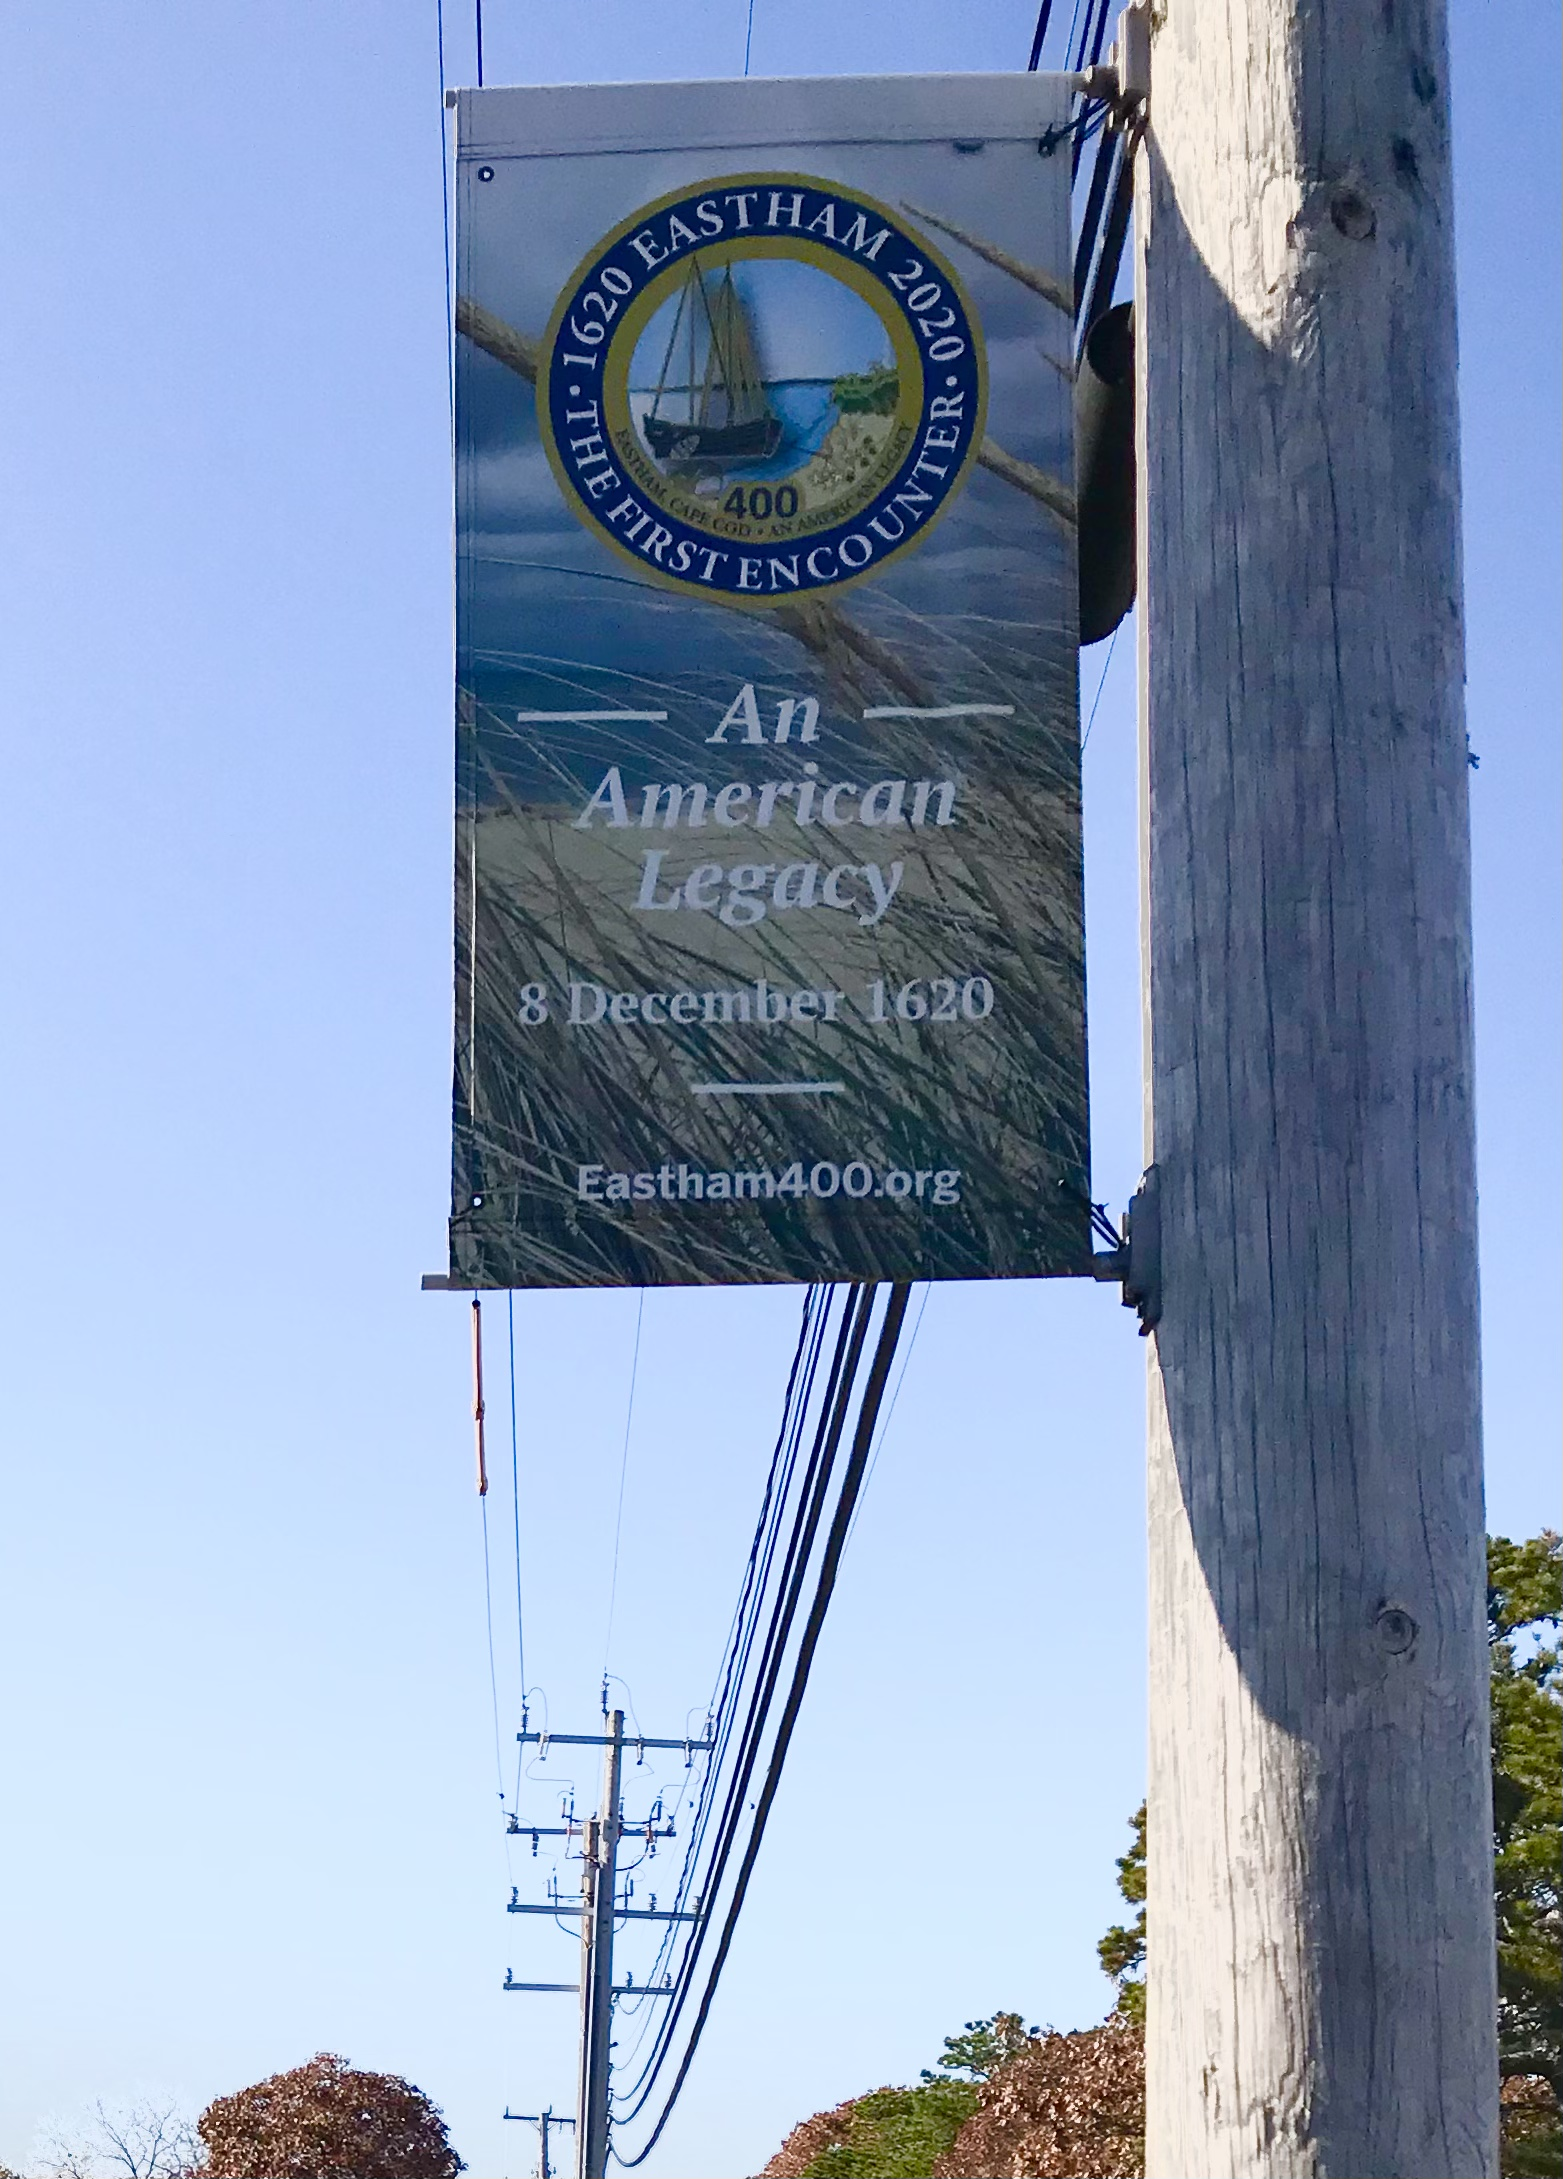 An American Legacy sign